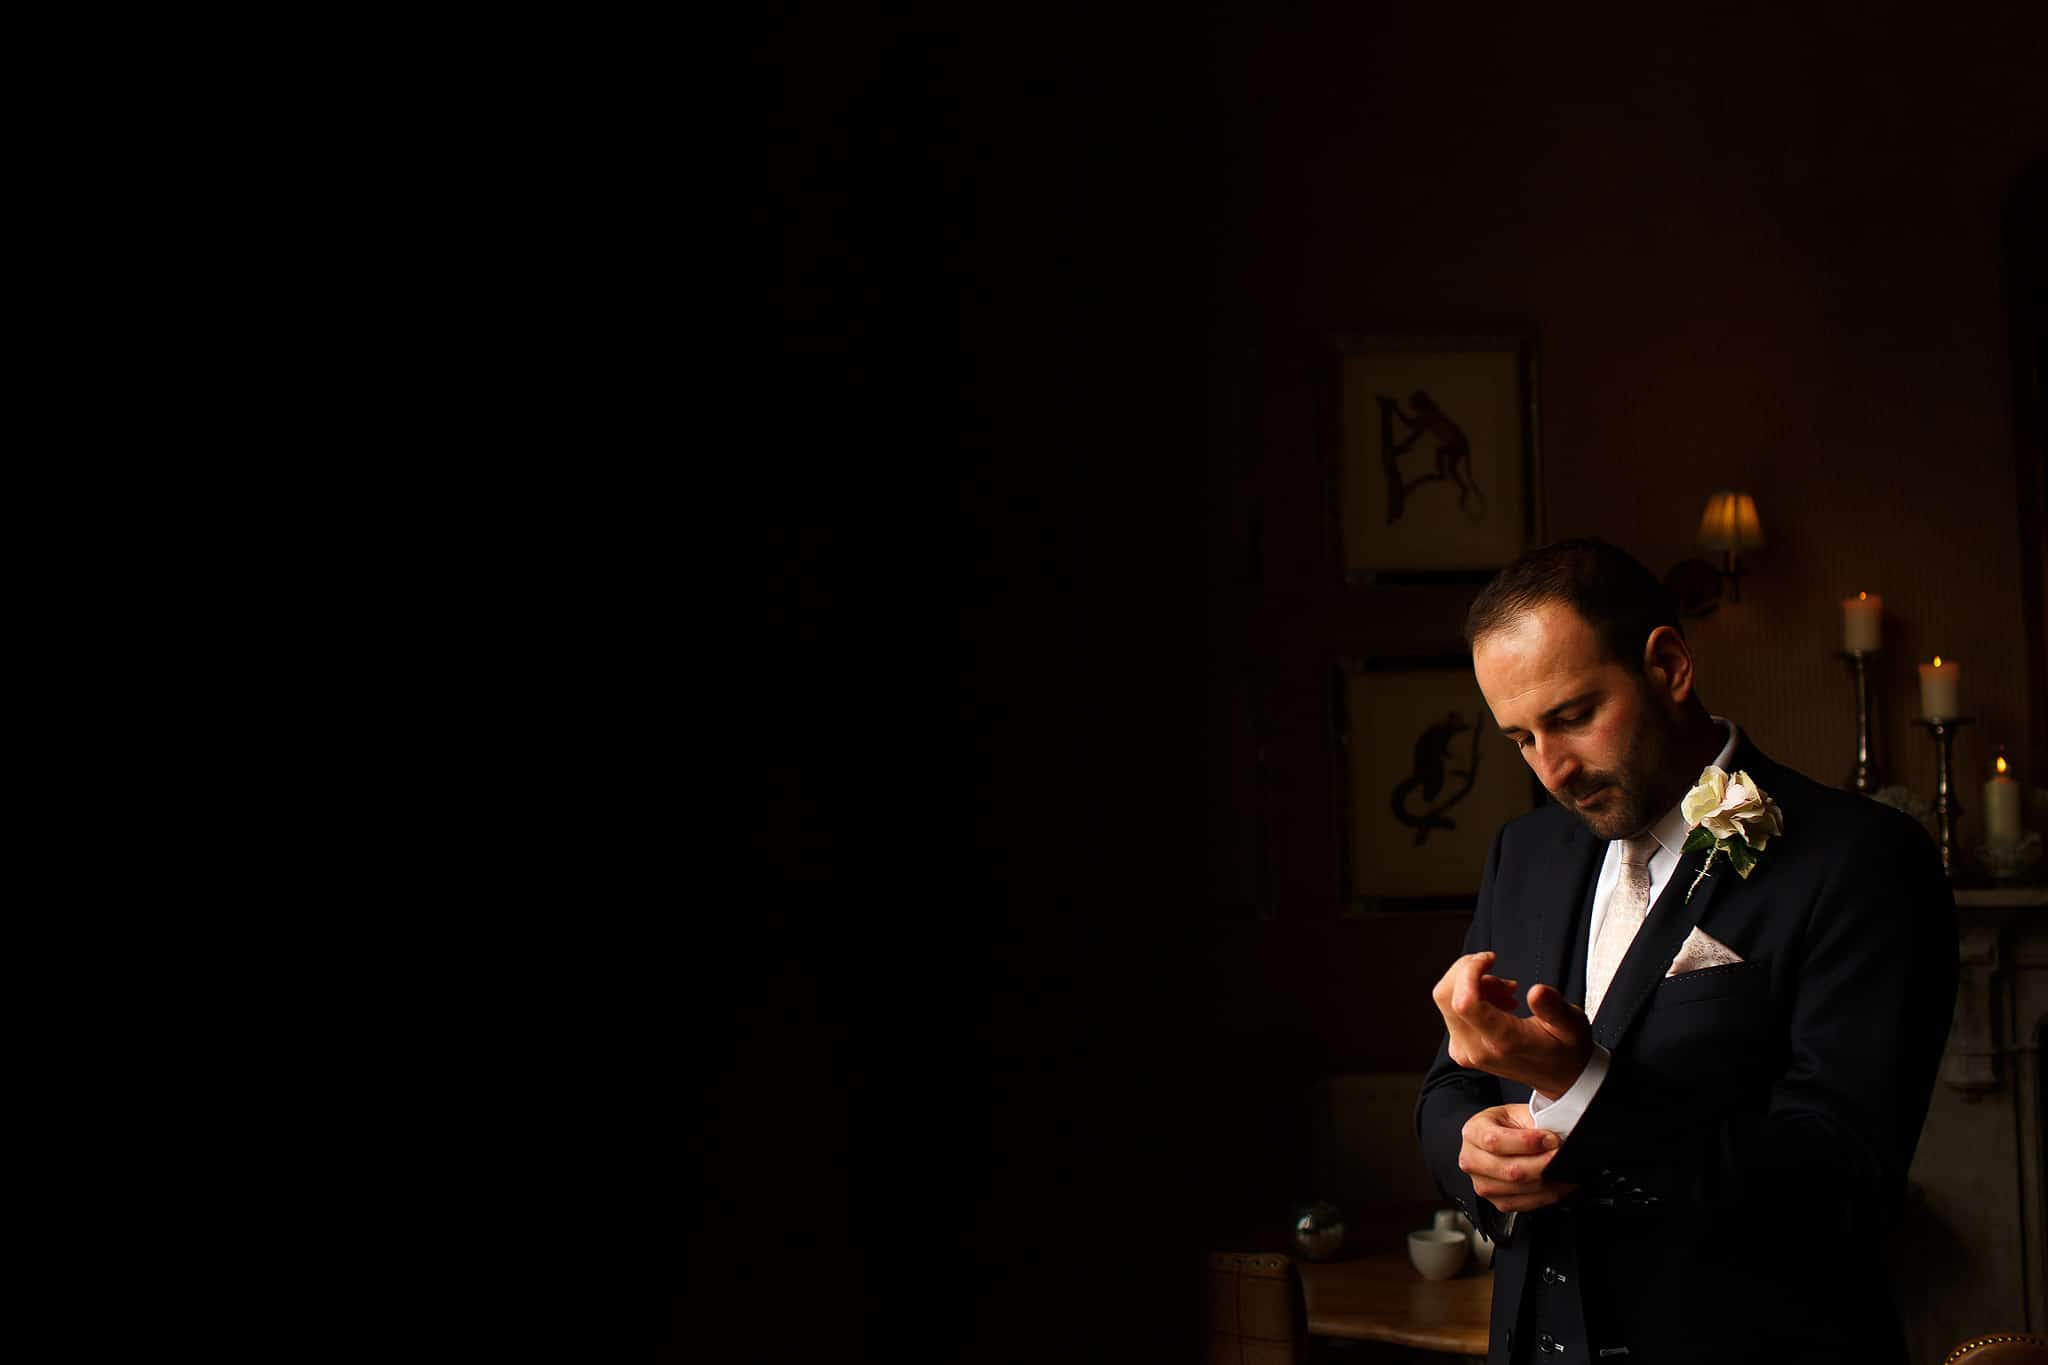 Portrait of Groom wearing navy suit in perfect window light at Falcon Manor wedding